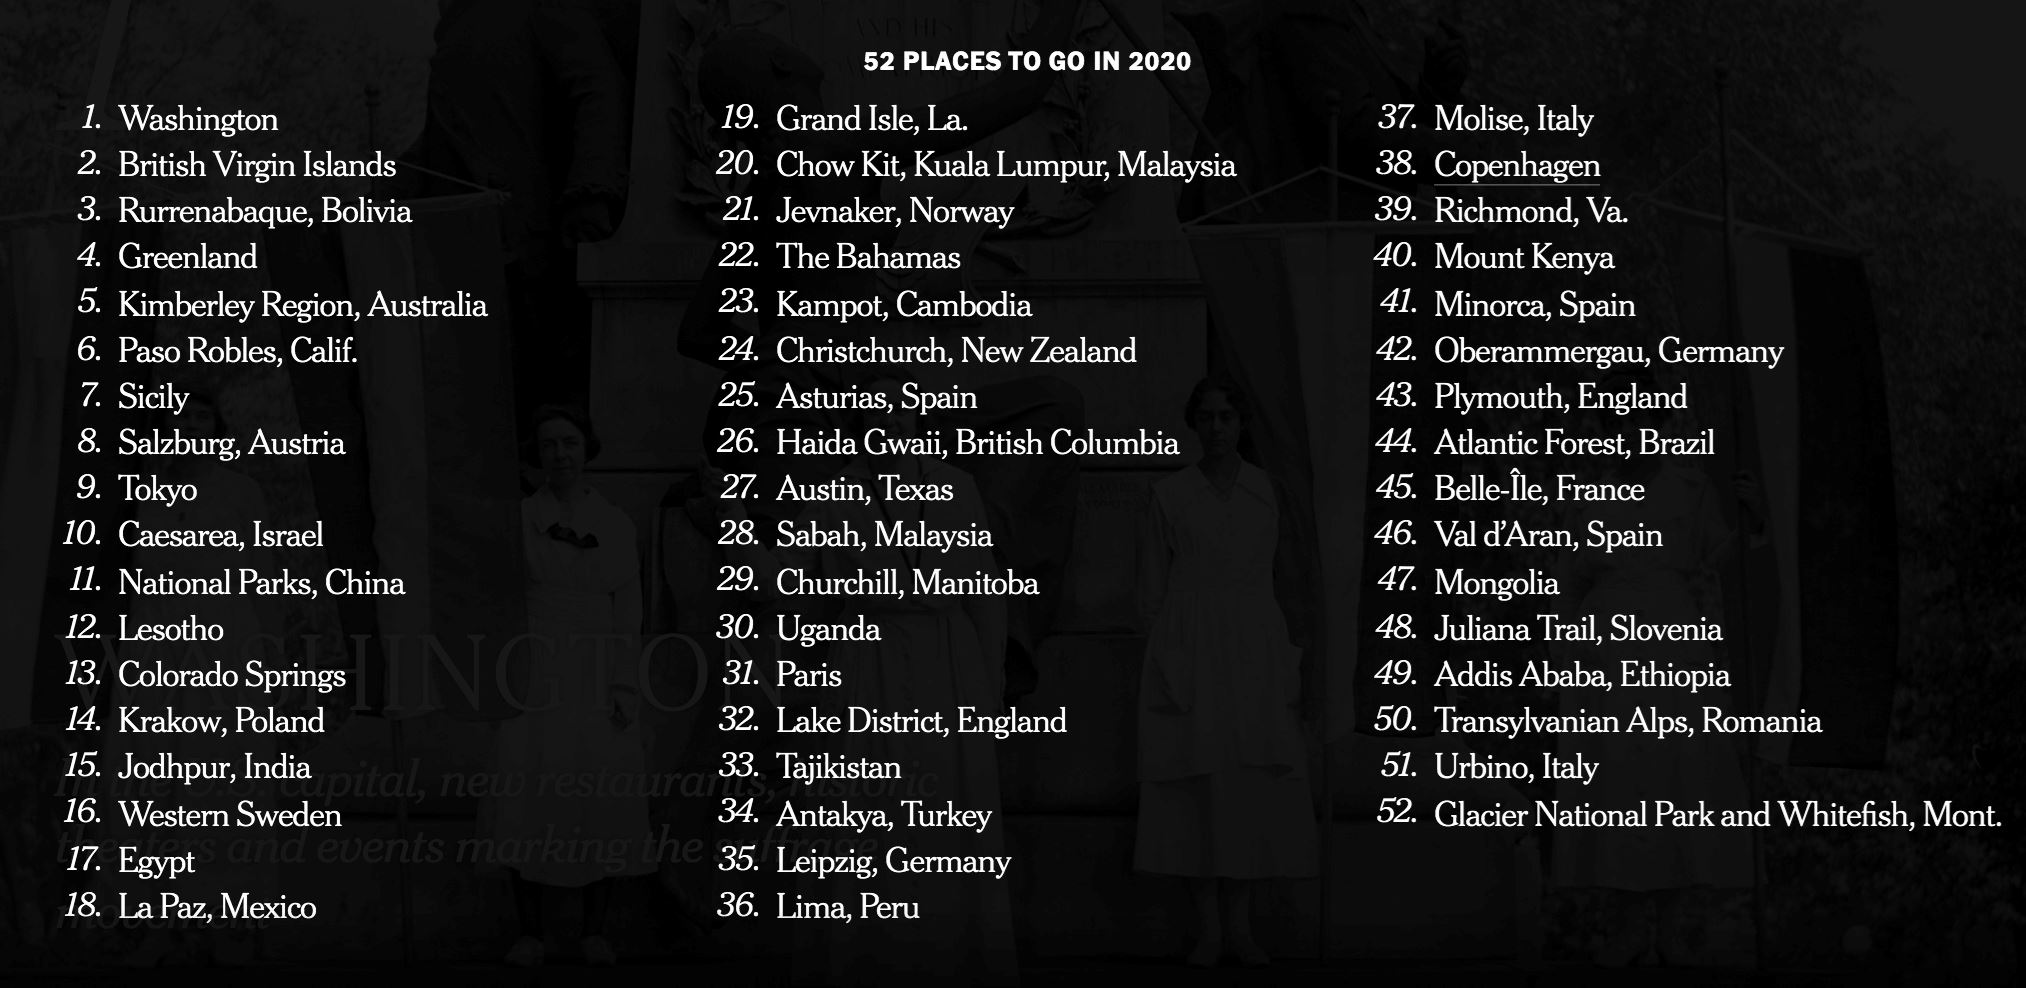 kl's chow kit and sabah make it on the new york times' 52 places to go in 2020 list